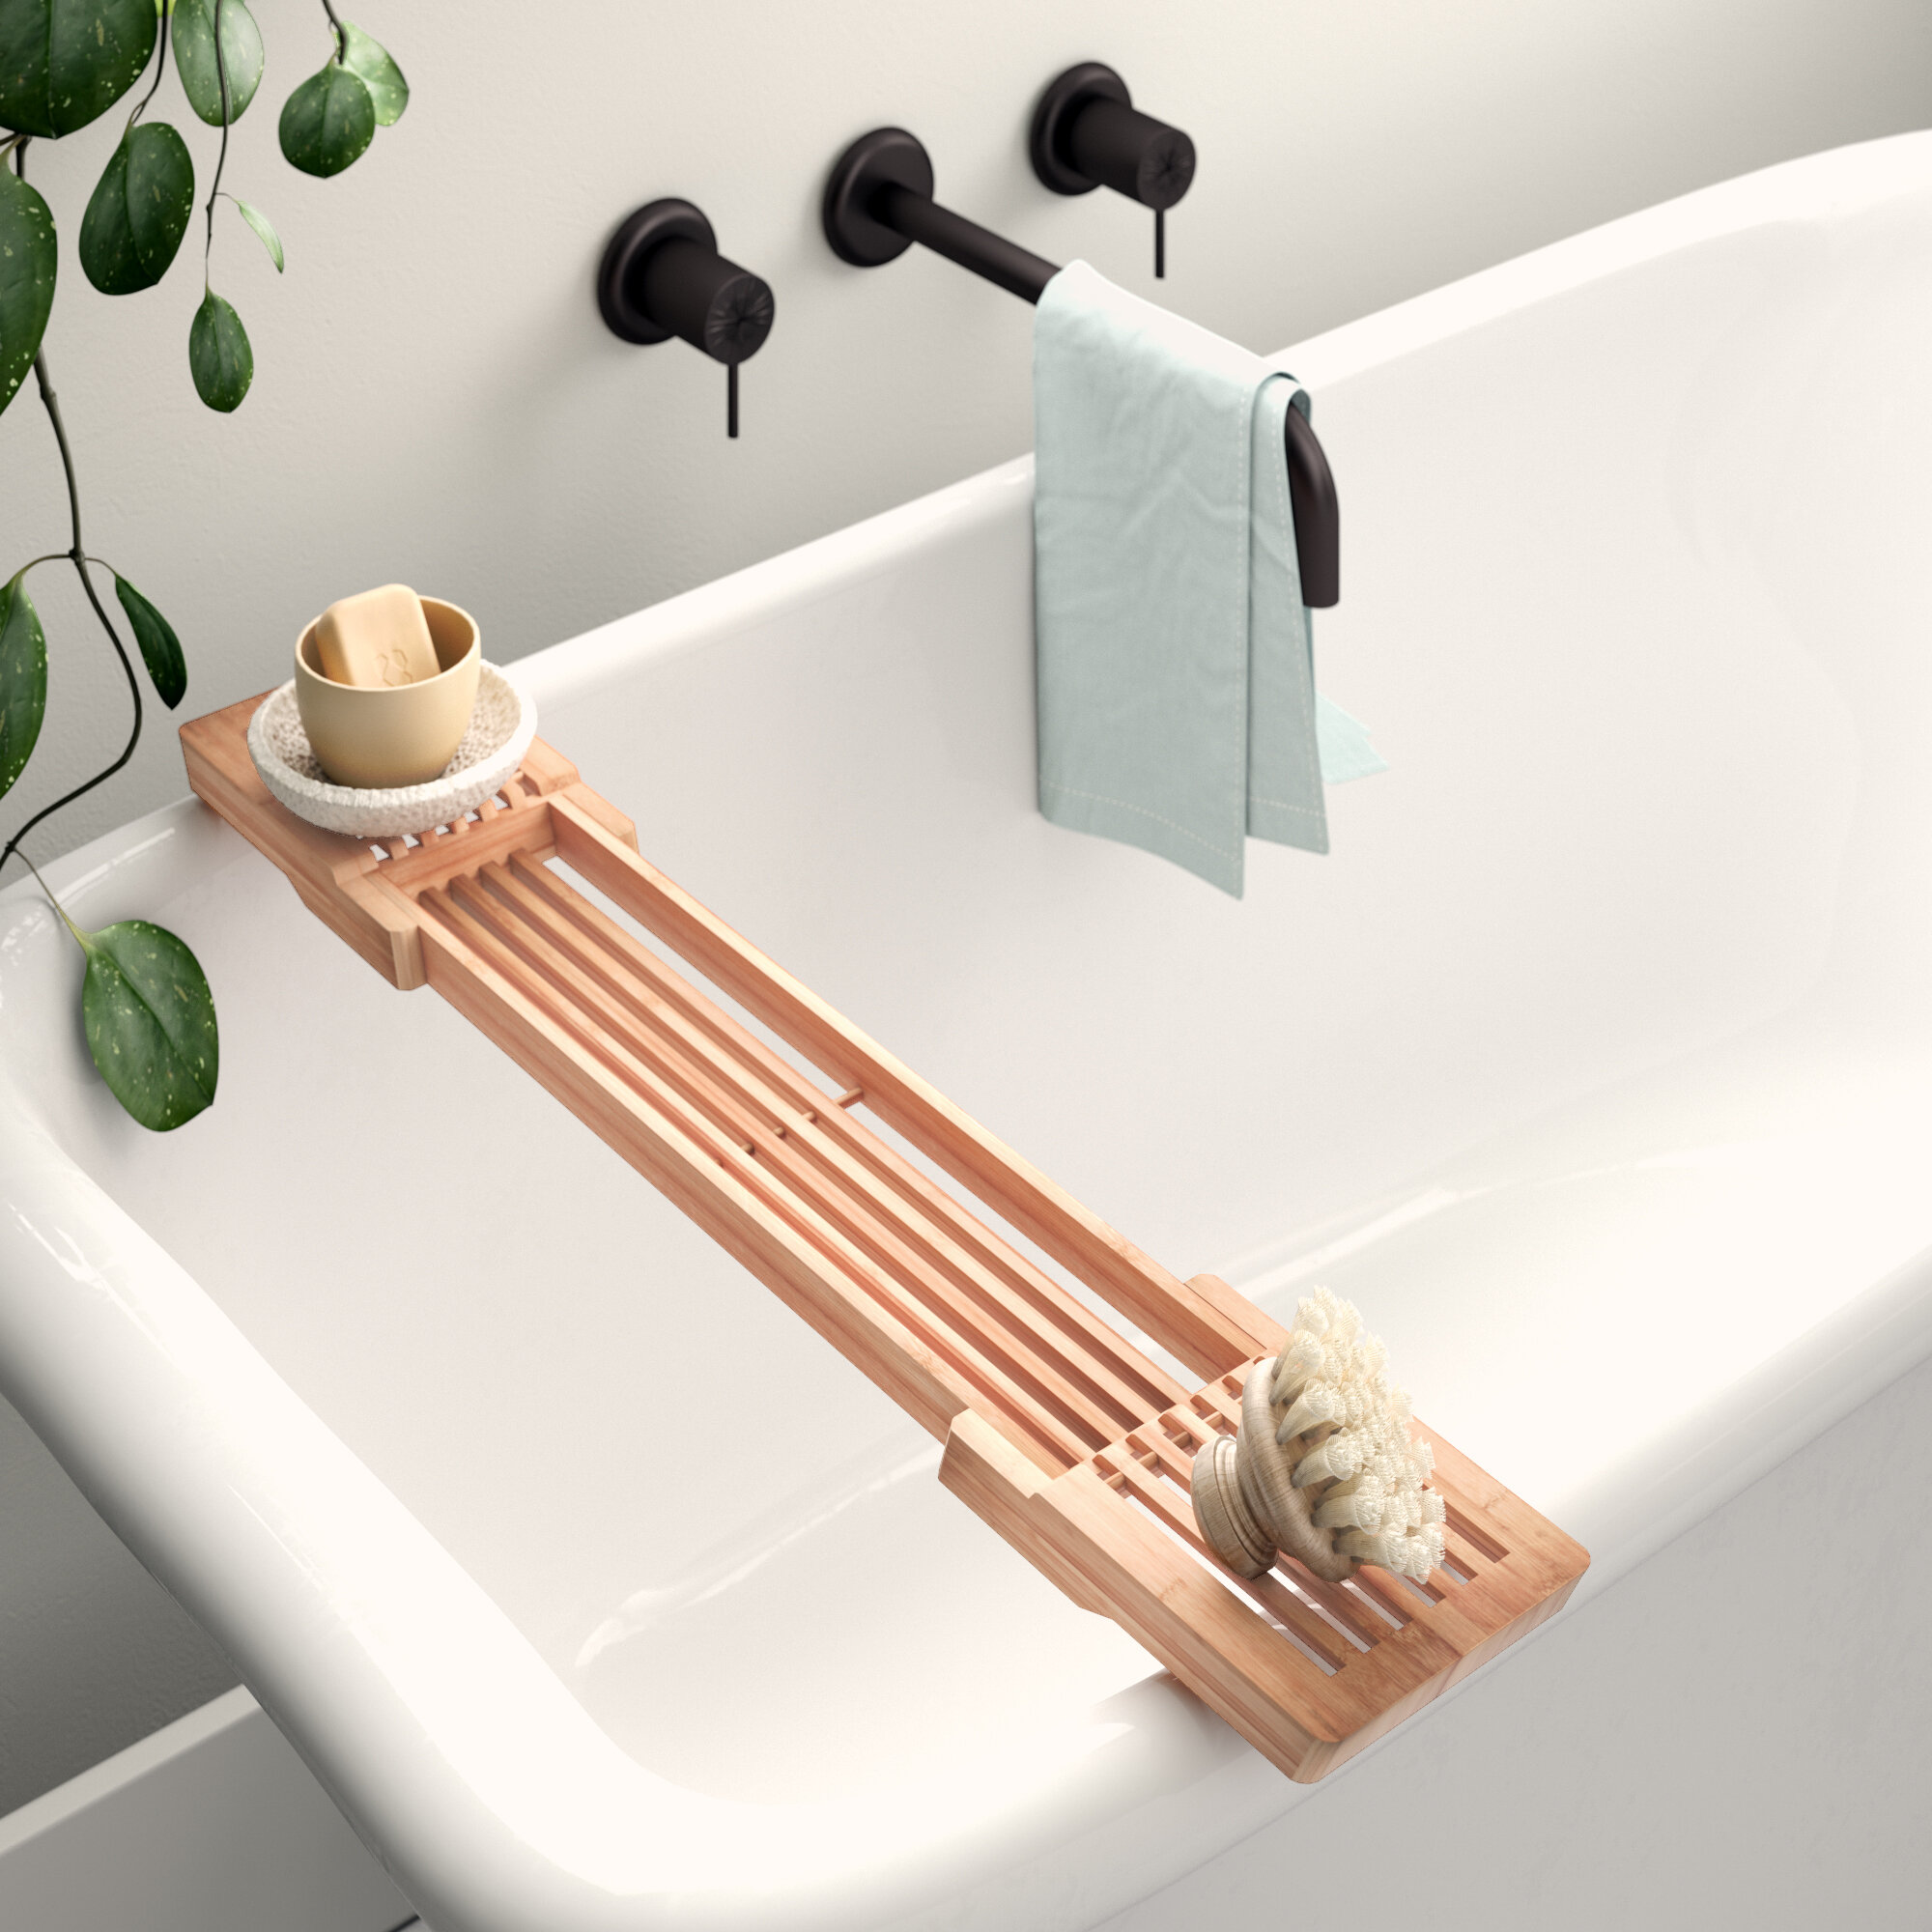 Extendable Bath Caddy with Wine Glass Holder and Tablet Book Stand Bathroom Spa Accessories Premium Wooden Bathtub Tray Rack